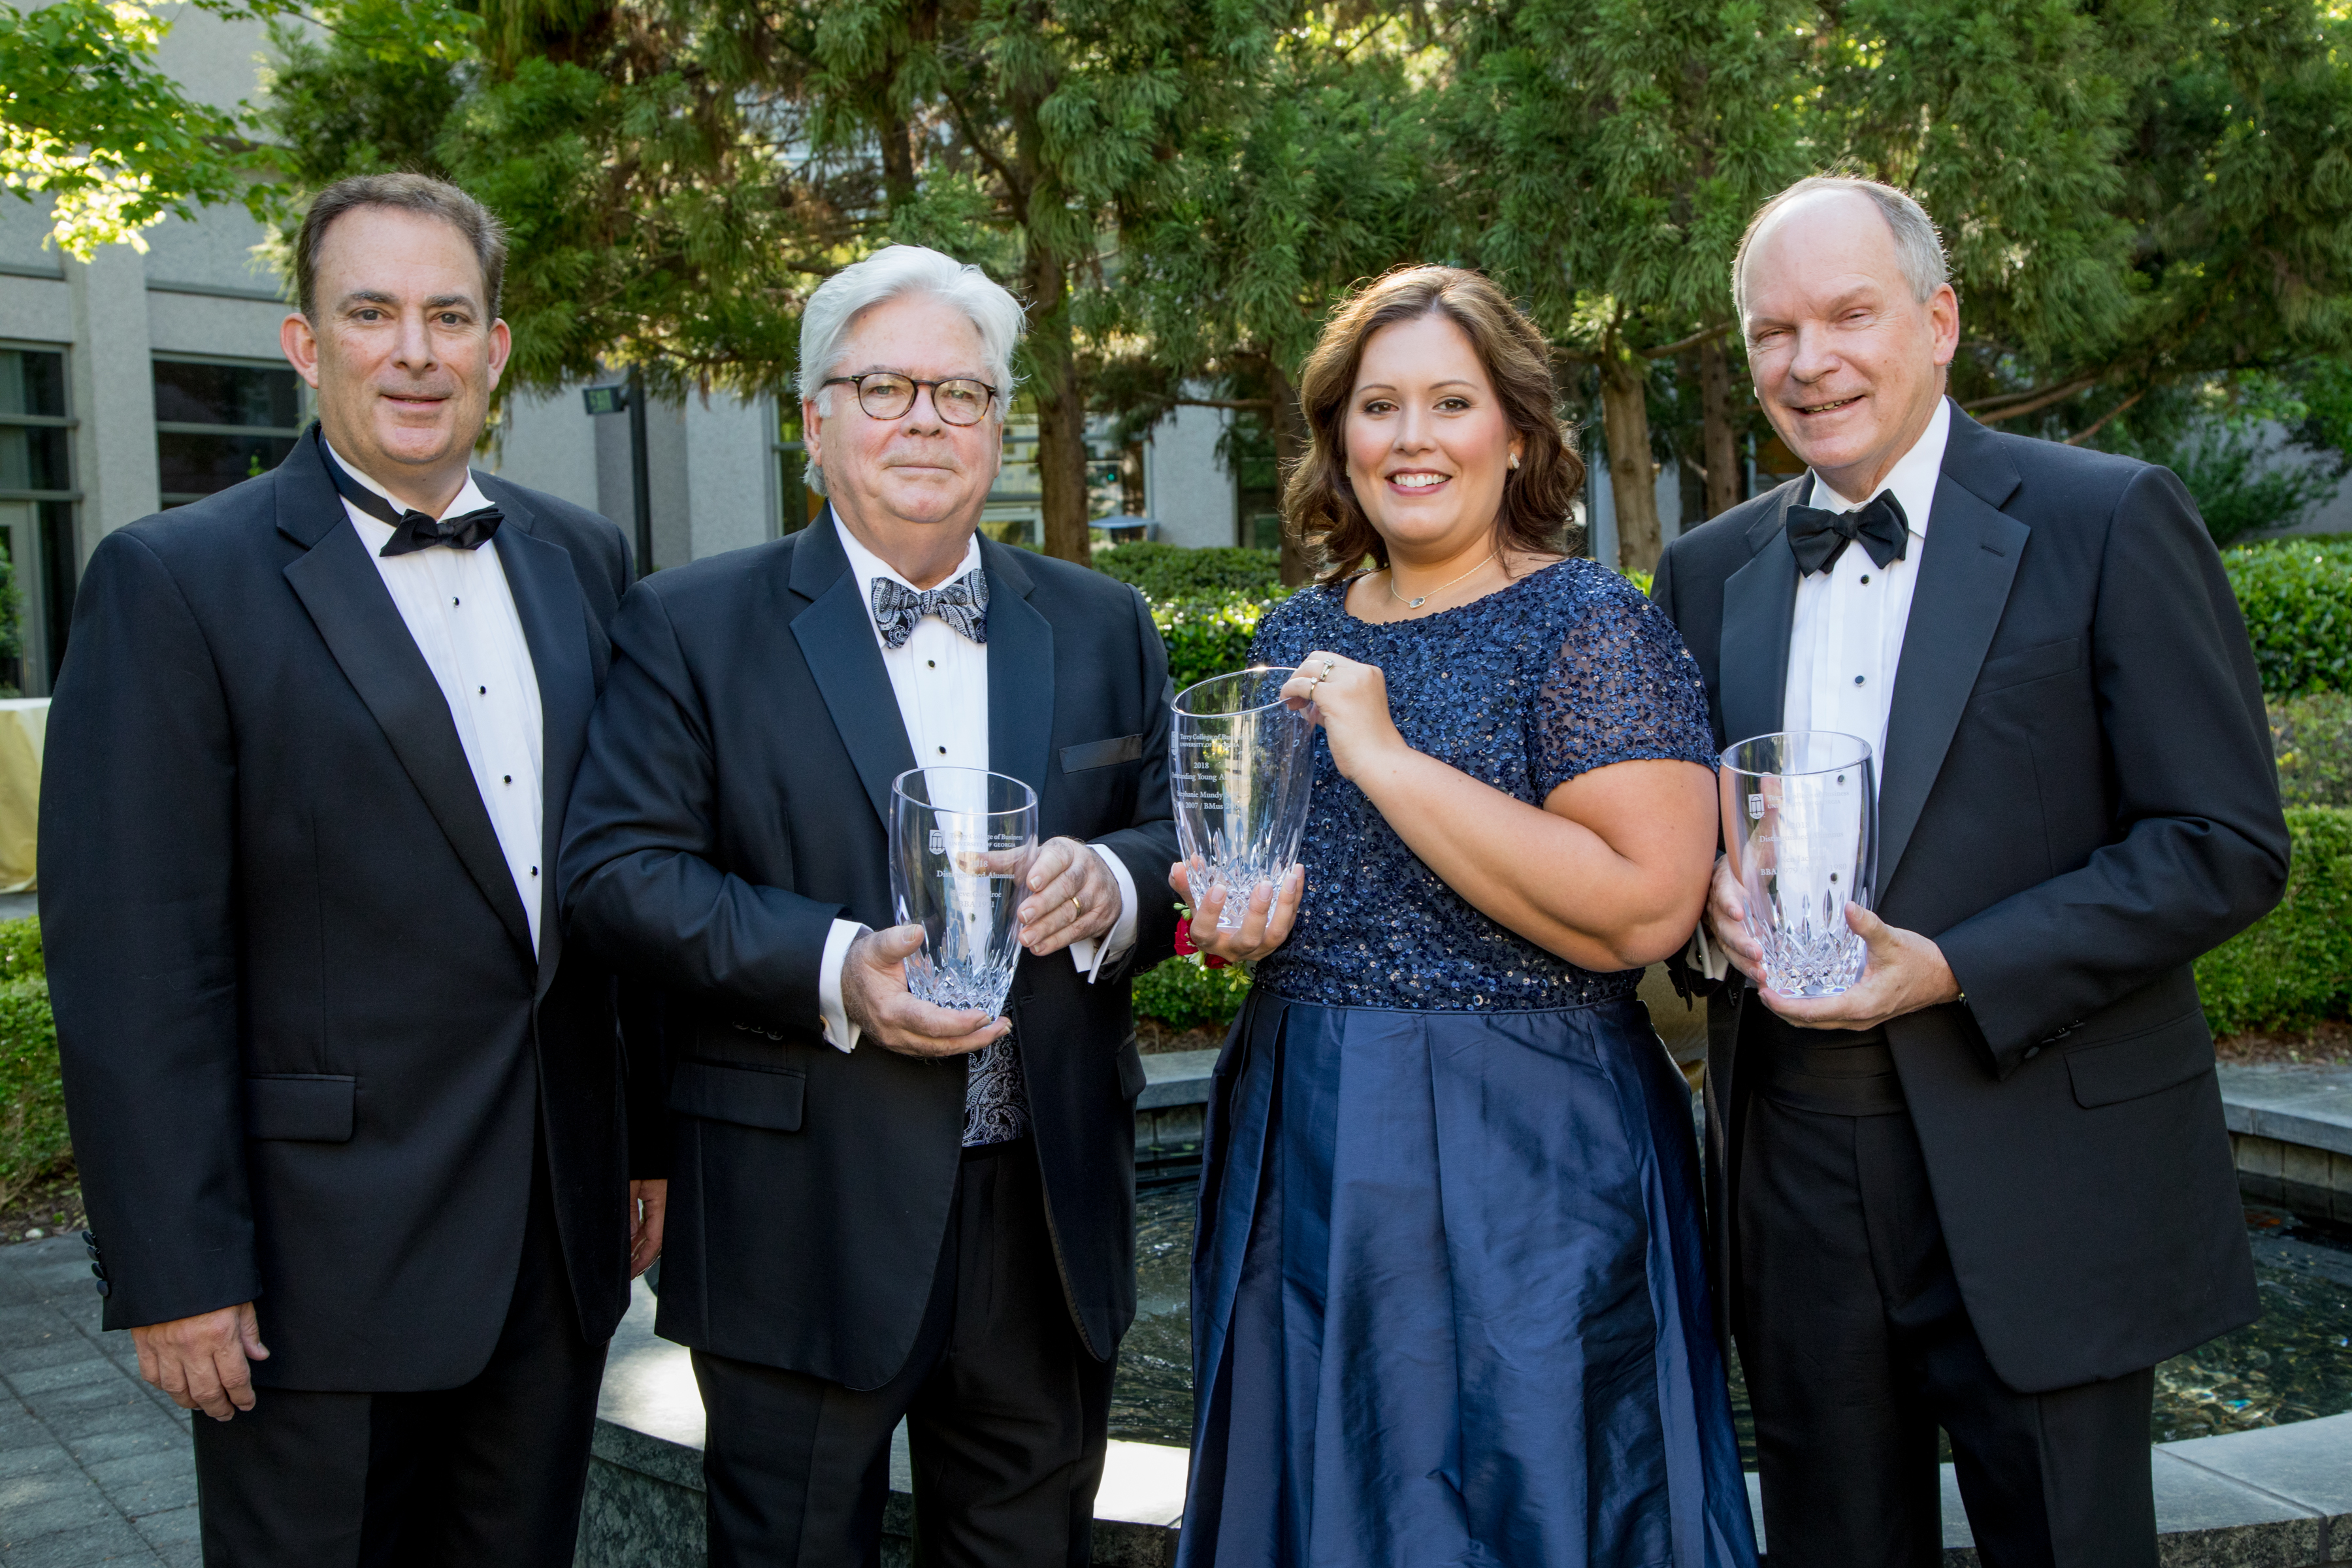 From left: Dean Benjamin C. Ayers stands with award recipients Steve Goodroe, Stephanie Mundy Self and Ken Jackson.